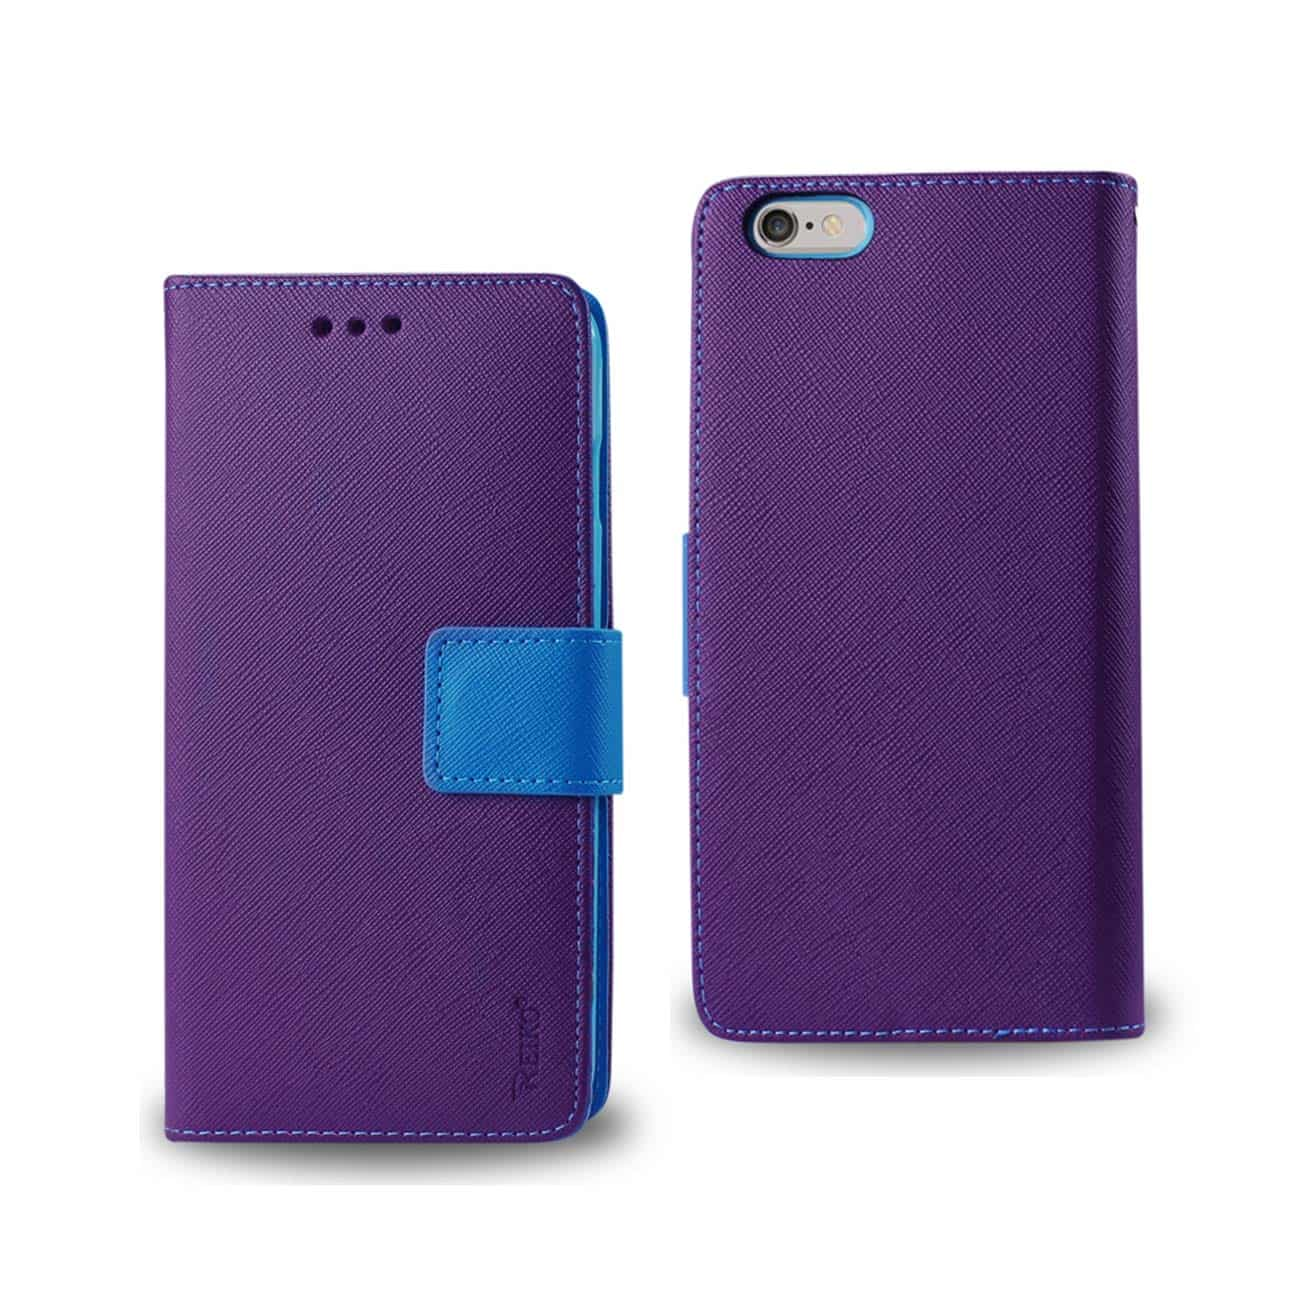 IPHONE 6 PLUS 3-IN-1 WALLET CASE IN PURPLE